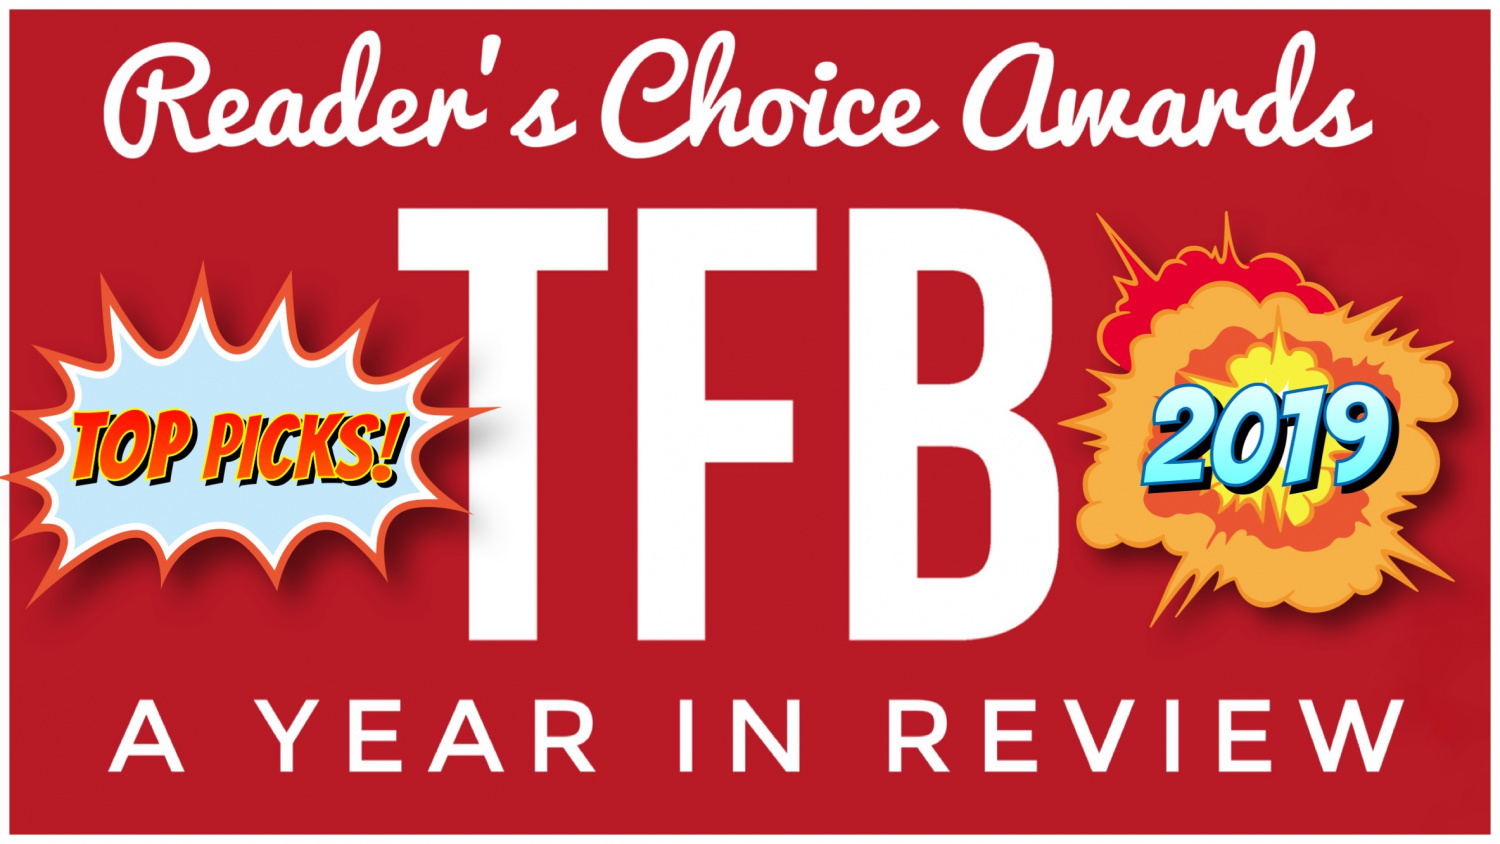 Reader's Choice Awards Year in Review: BEST Guns, Silencers & Gear